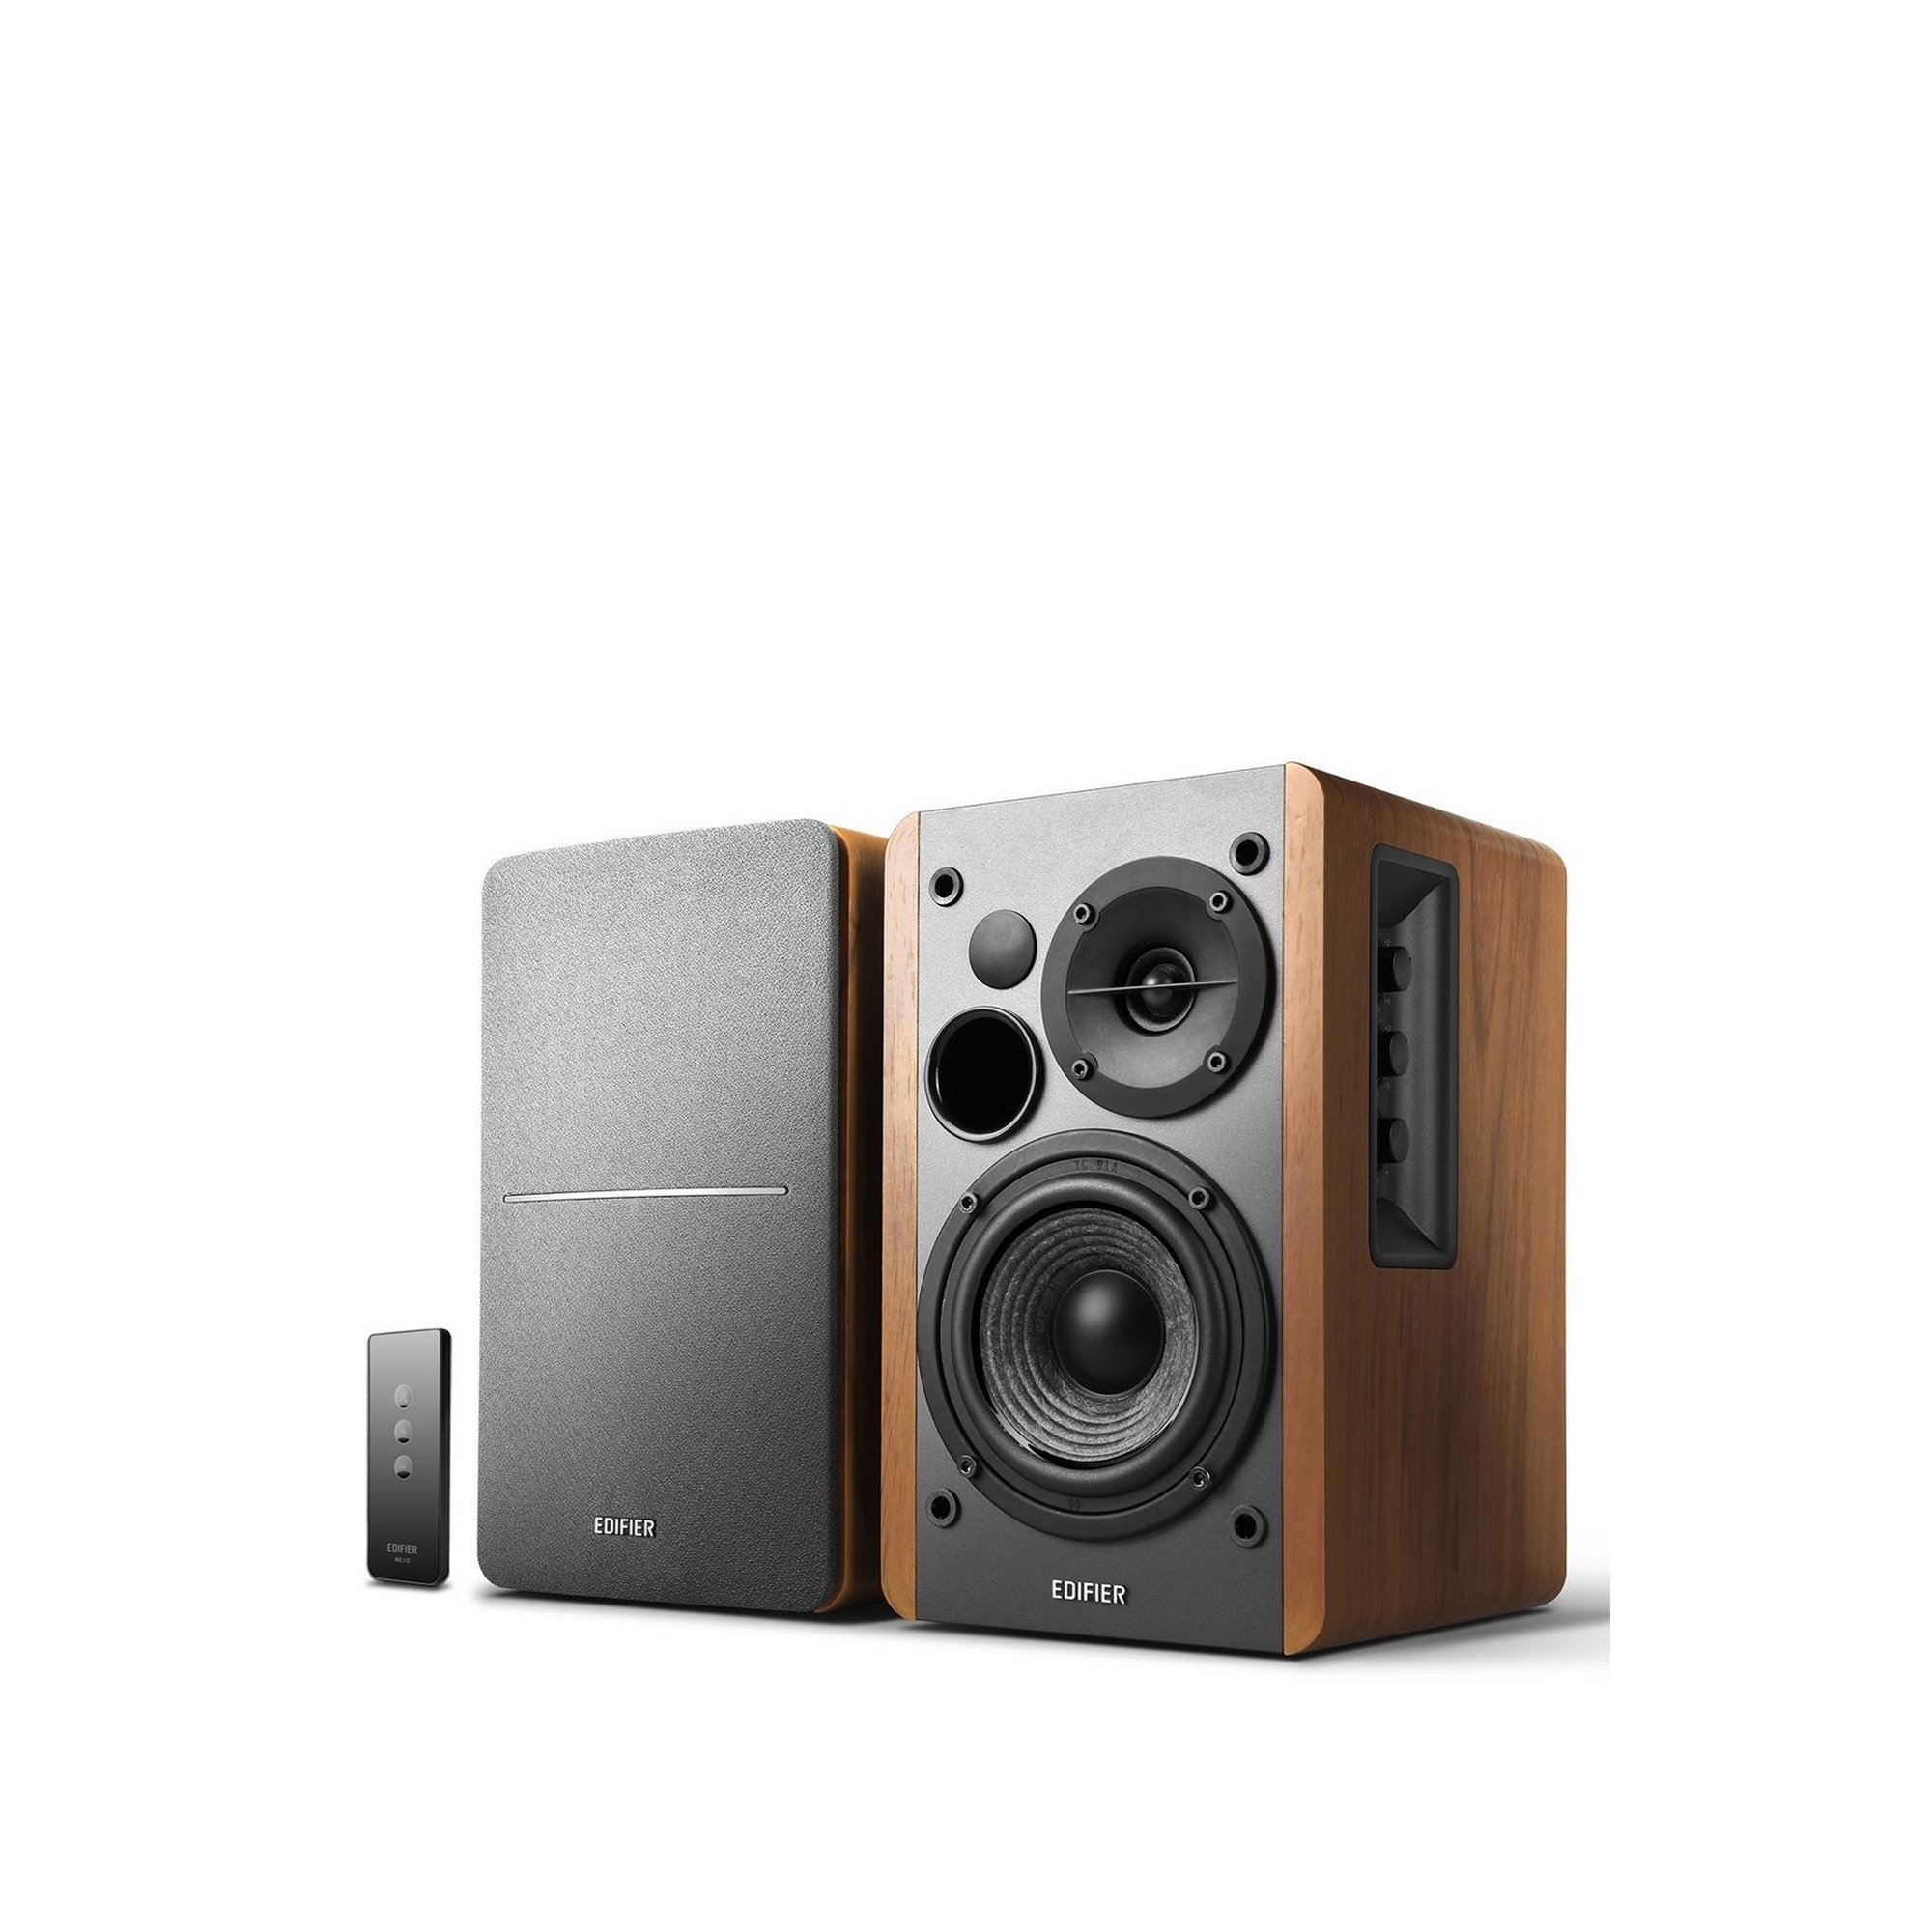 Image of Edifier R1280T 2.0 Wired Active Speakers